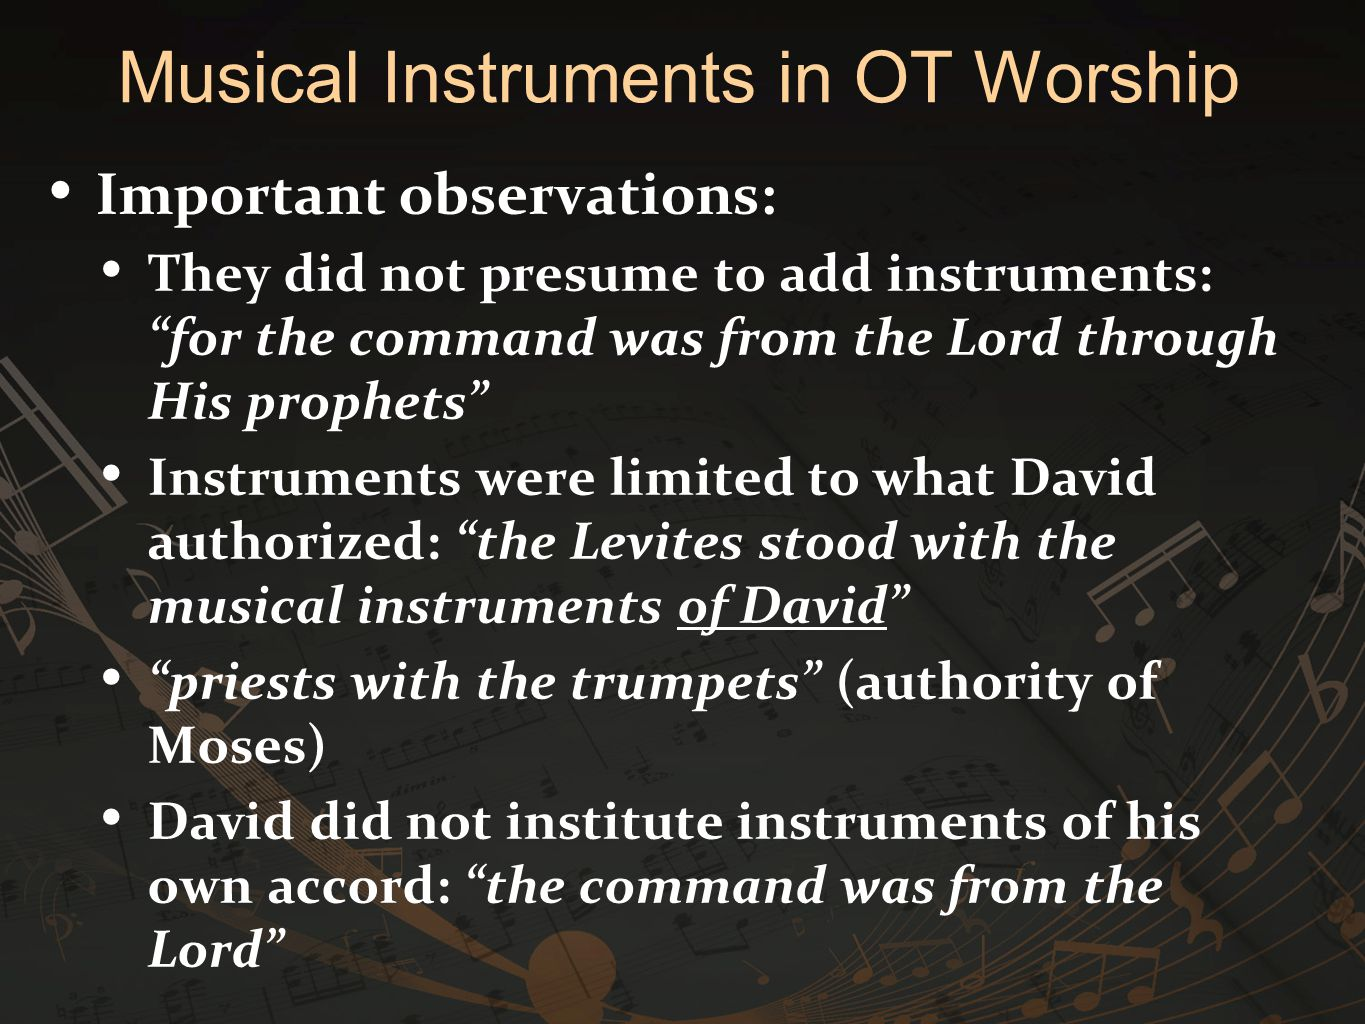 Important observations: They did not presume to add instruments: for the command was from the Lord through His prophets Instruments were limited to what David authorized: the Levites stood with the musical instruments of David priests with the trumpets (authority of Moses) David did not institute instruments of his own accord: the command was from the Lord Musical Instruments in OT Worship